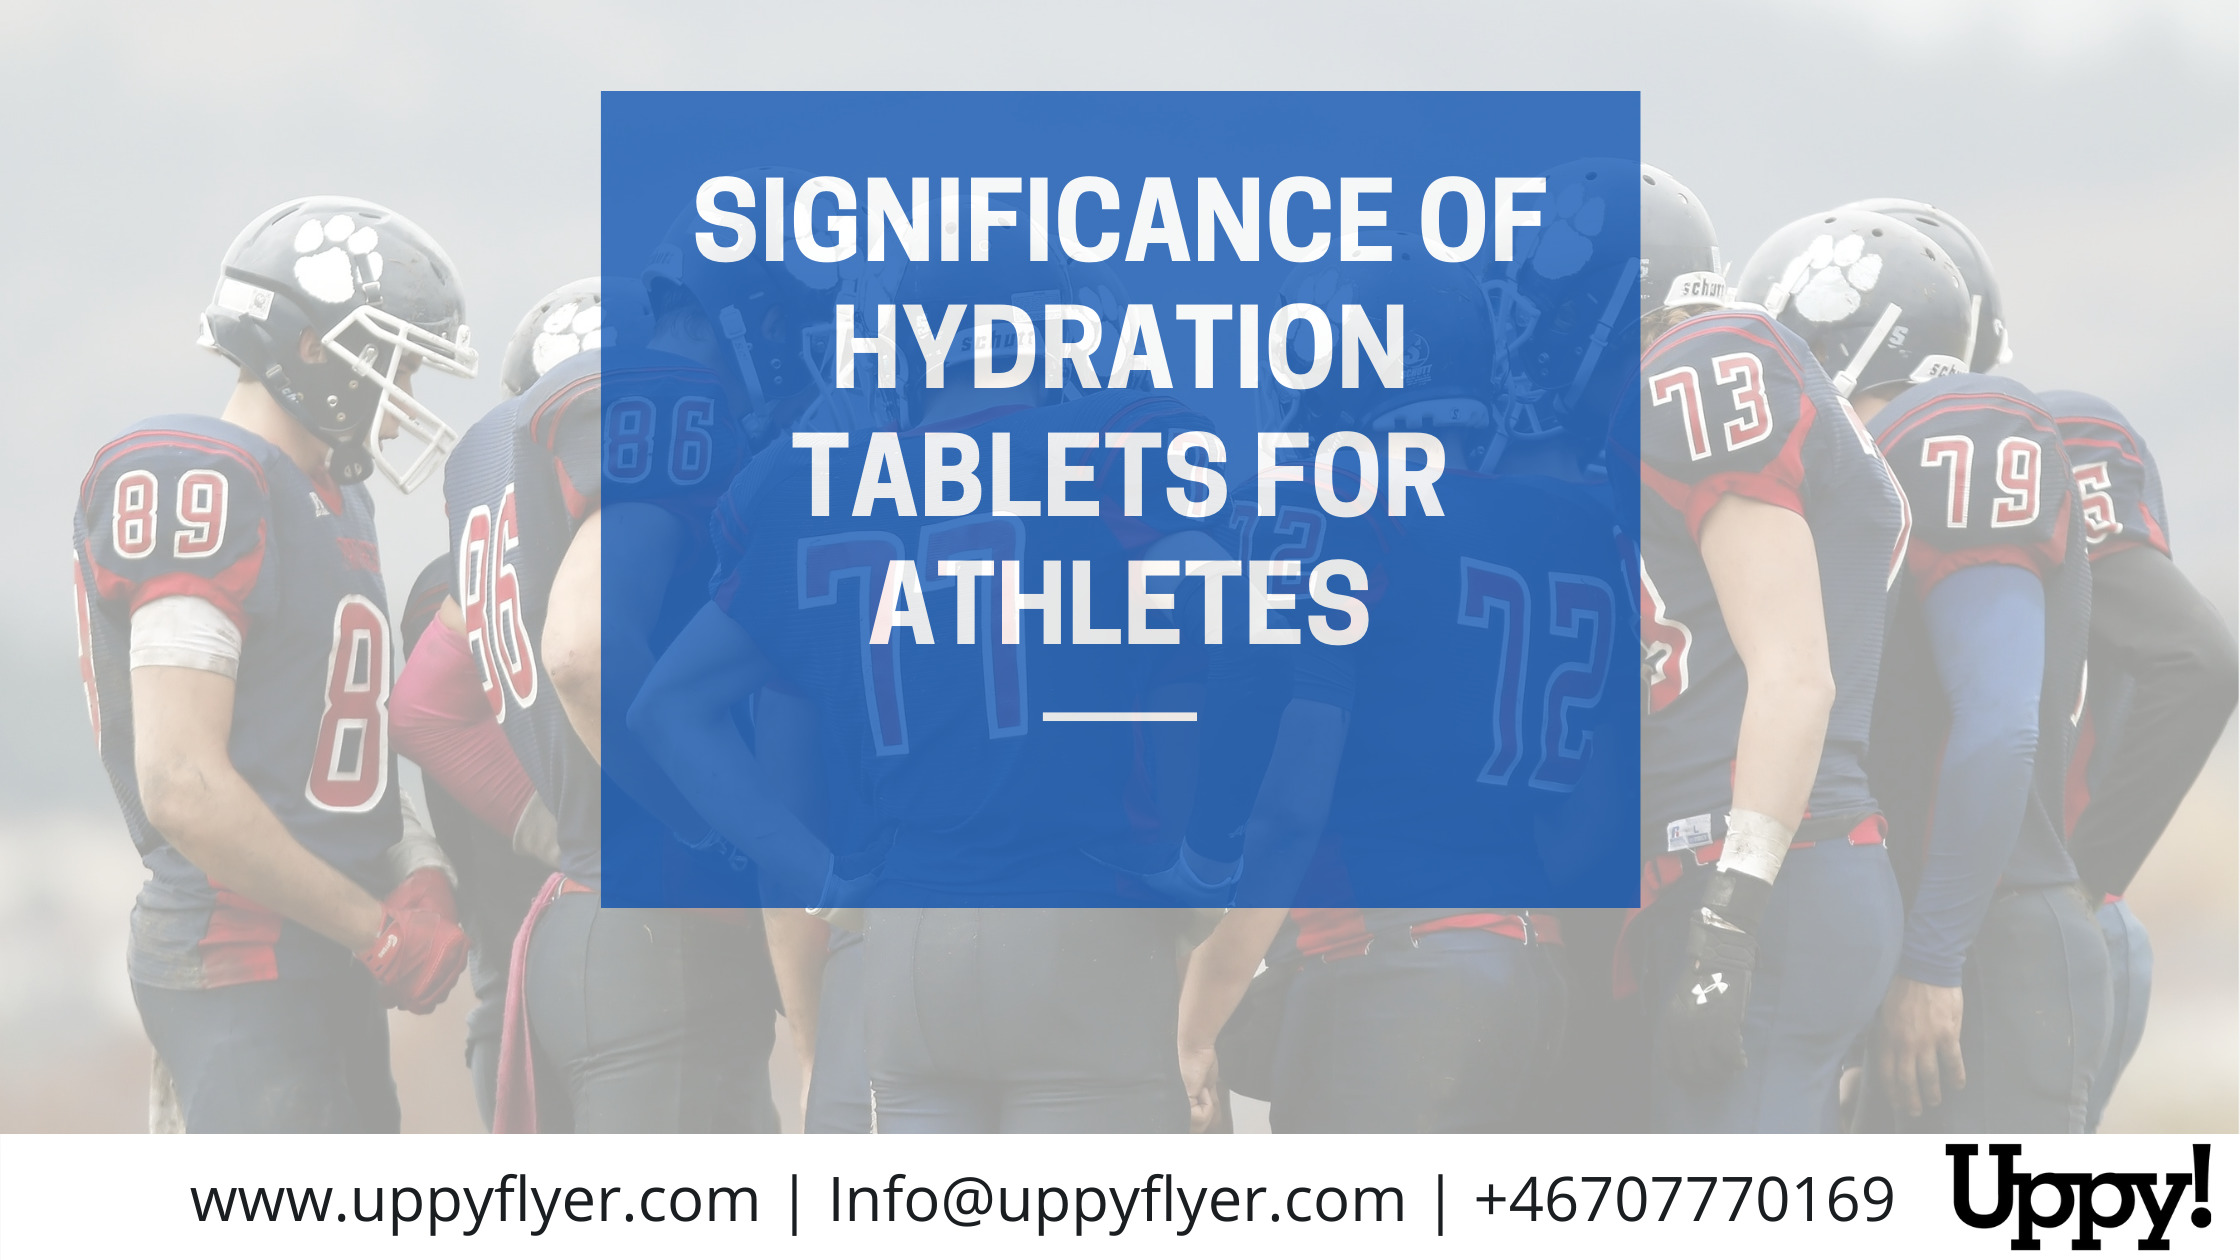 Significance of Hydration Tablets for Athletes